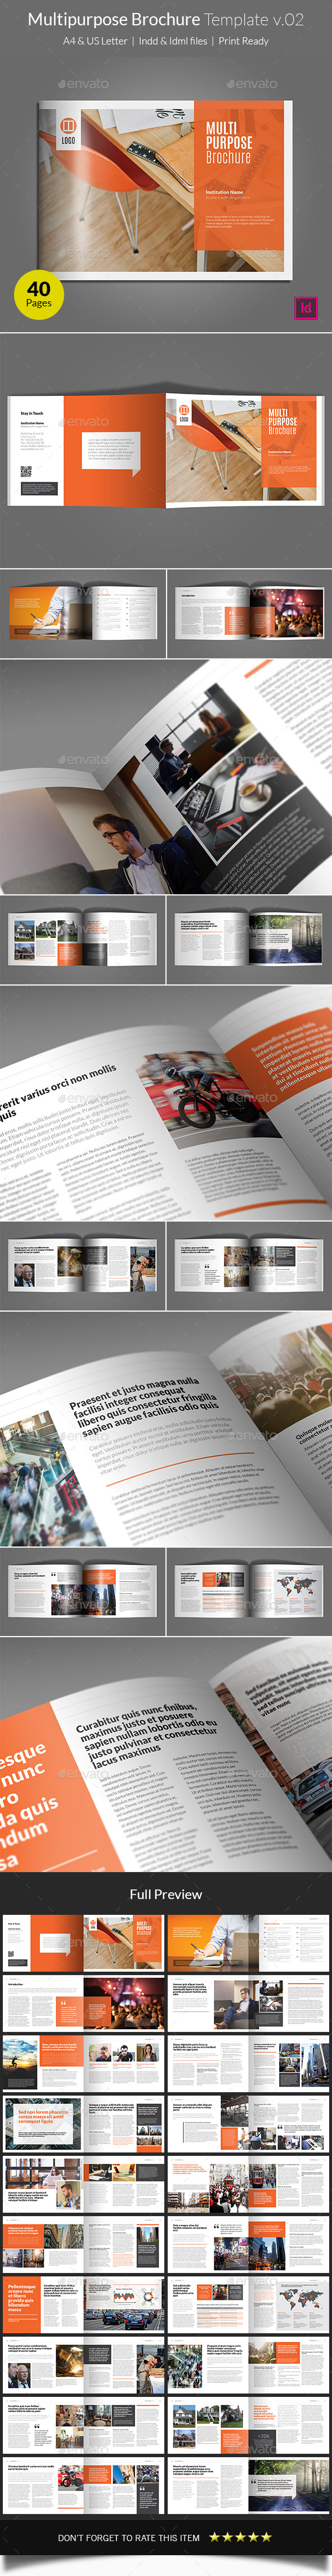 Multipurpose Brochure Template v02 - Informational Brochures